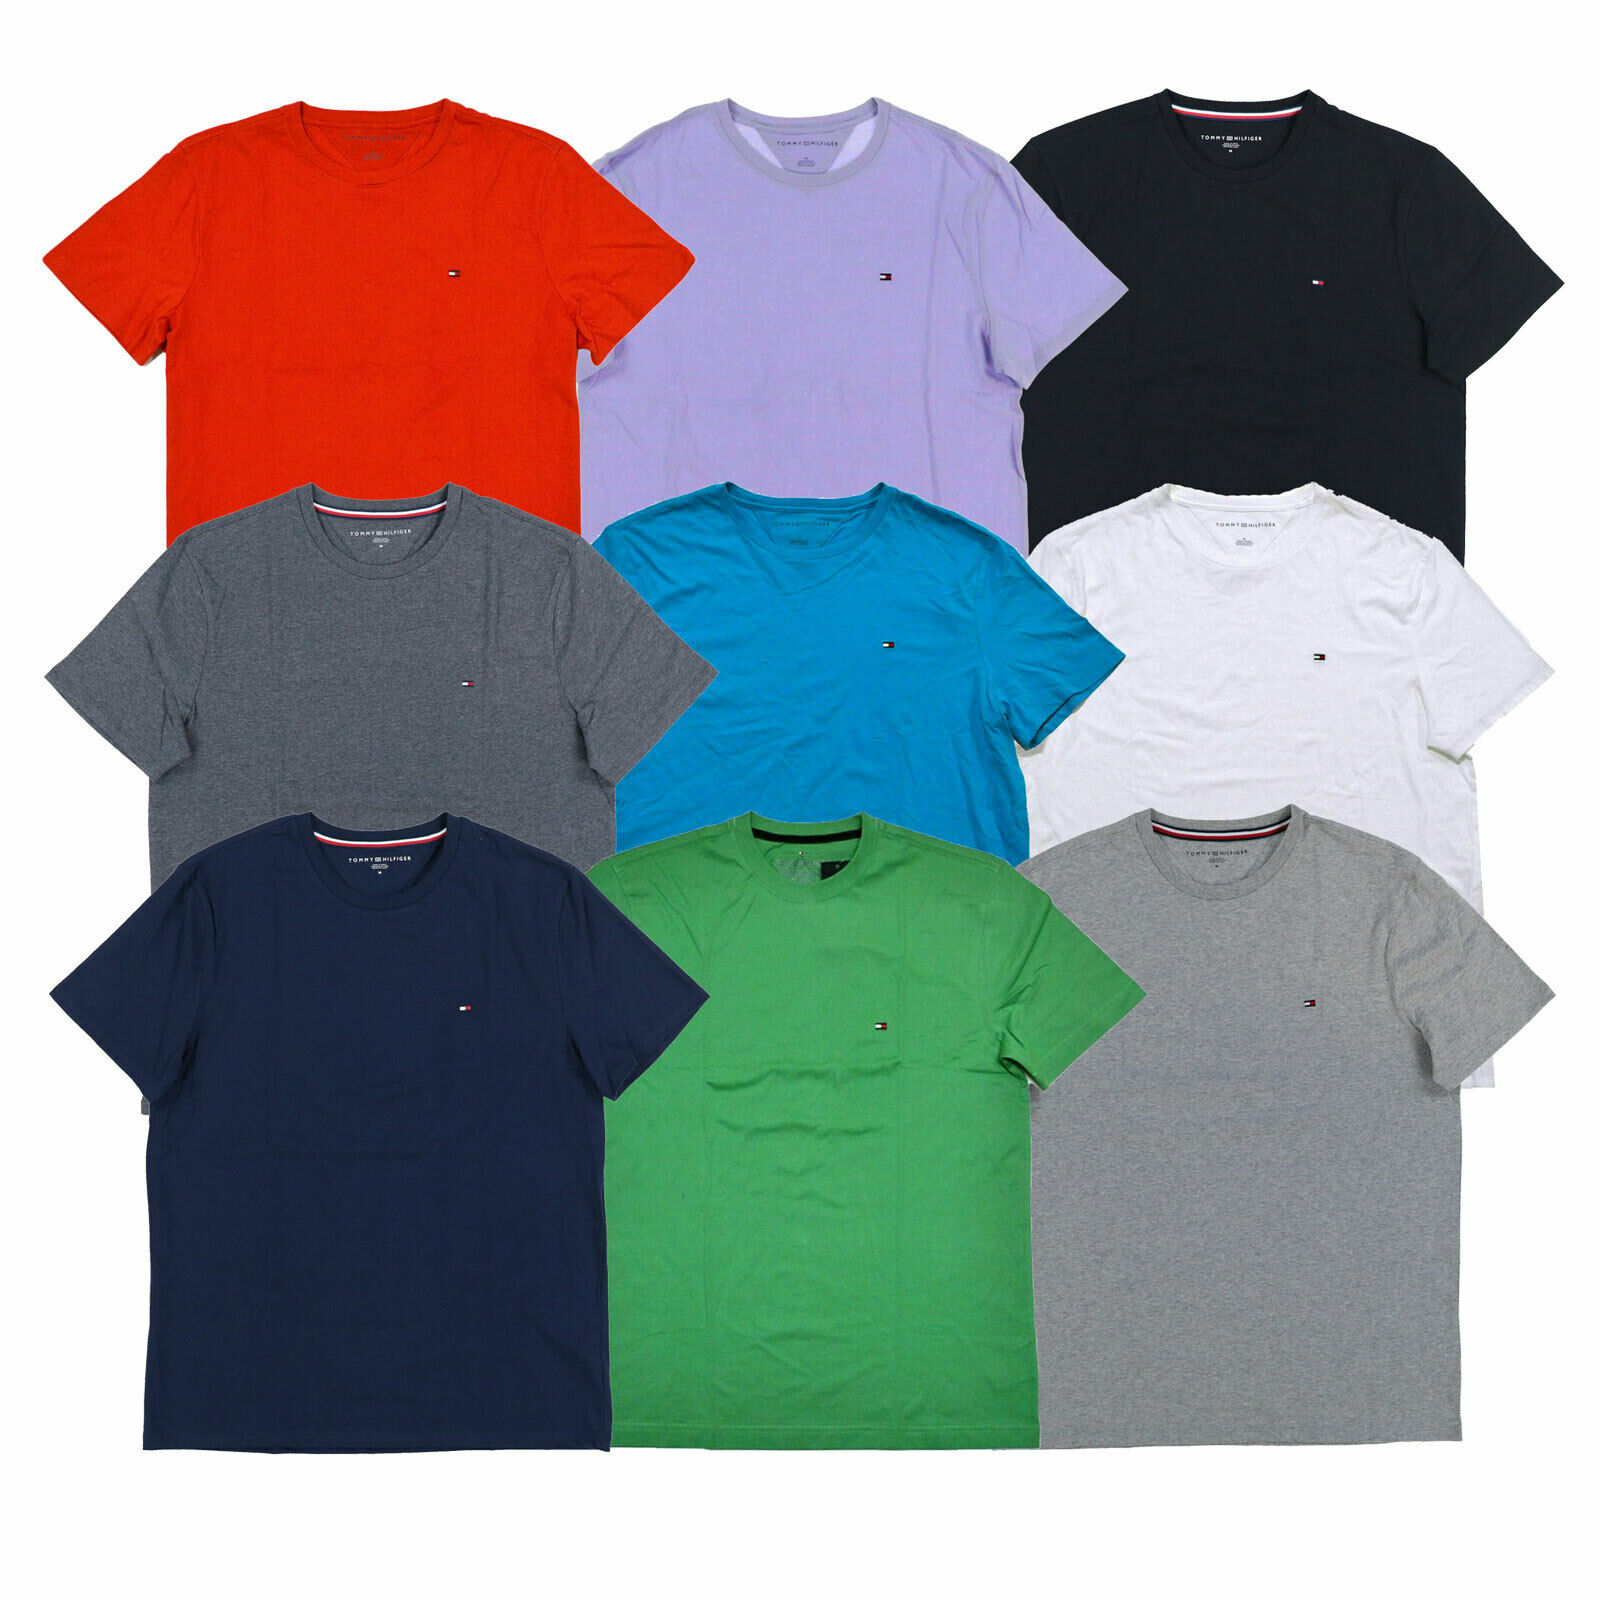 Tommy Hilfiger T-Shirt Mens Crew Neck Tee Classic Fit Short